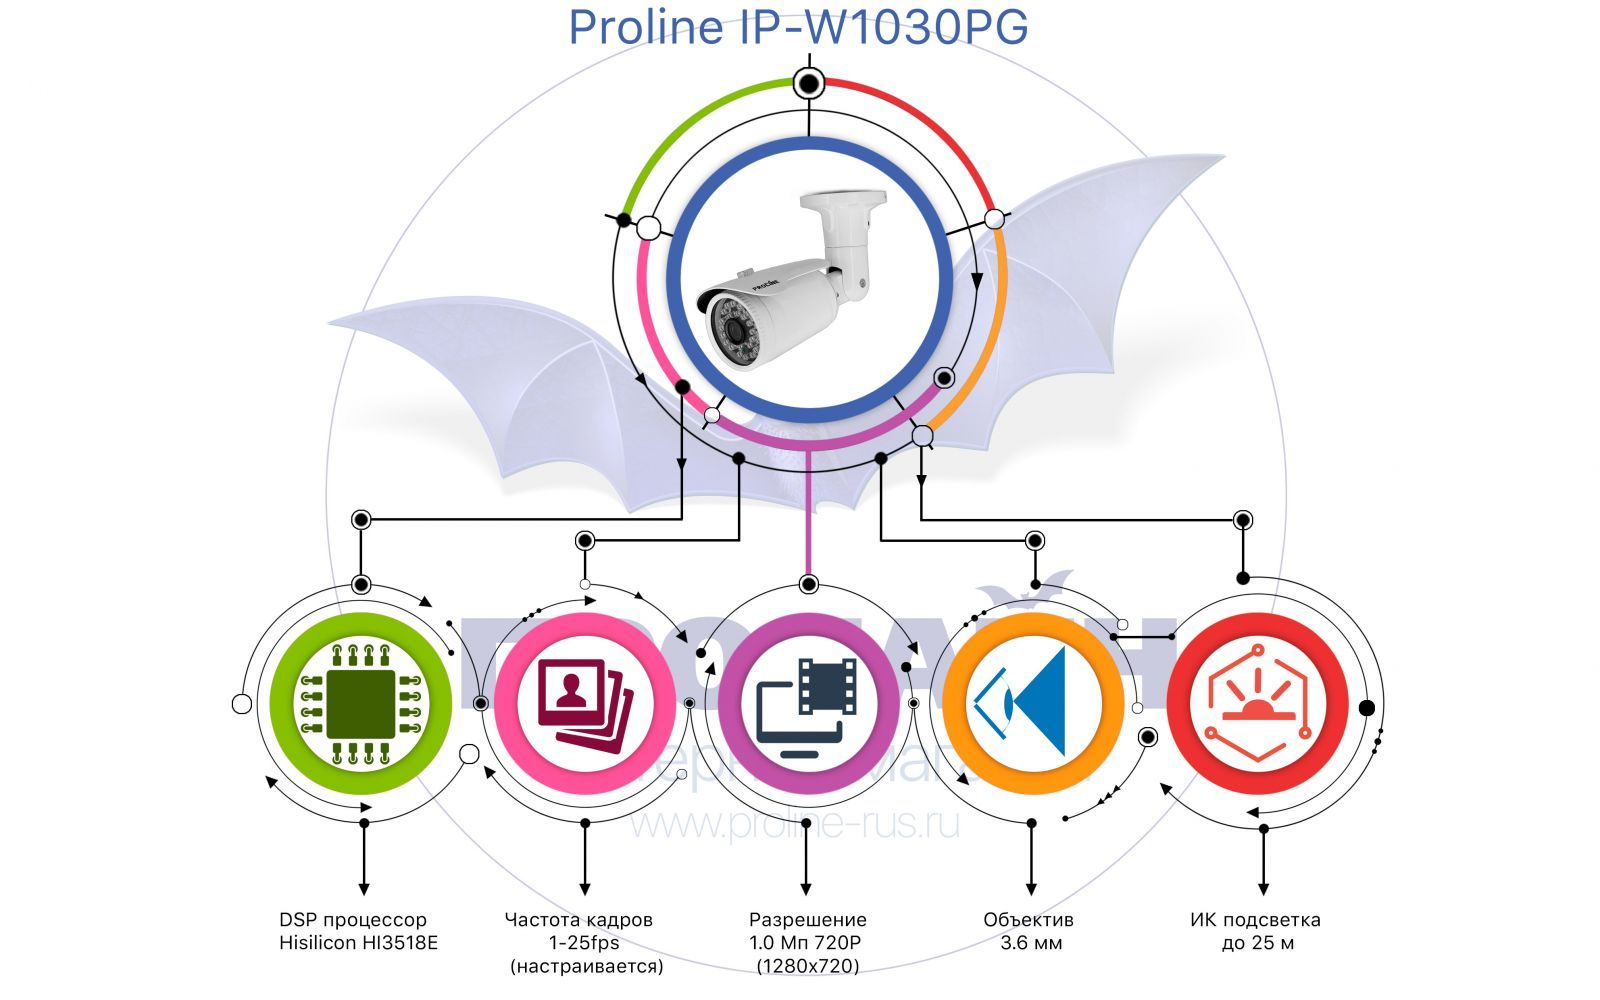 Уличная IP-камера Proline IP-W1030PG